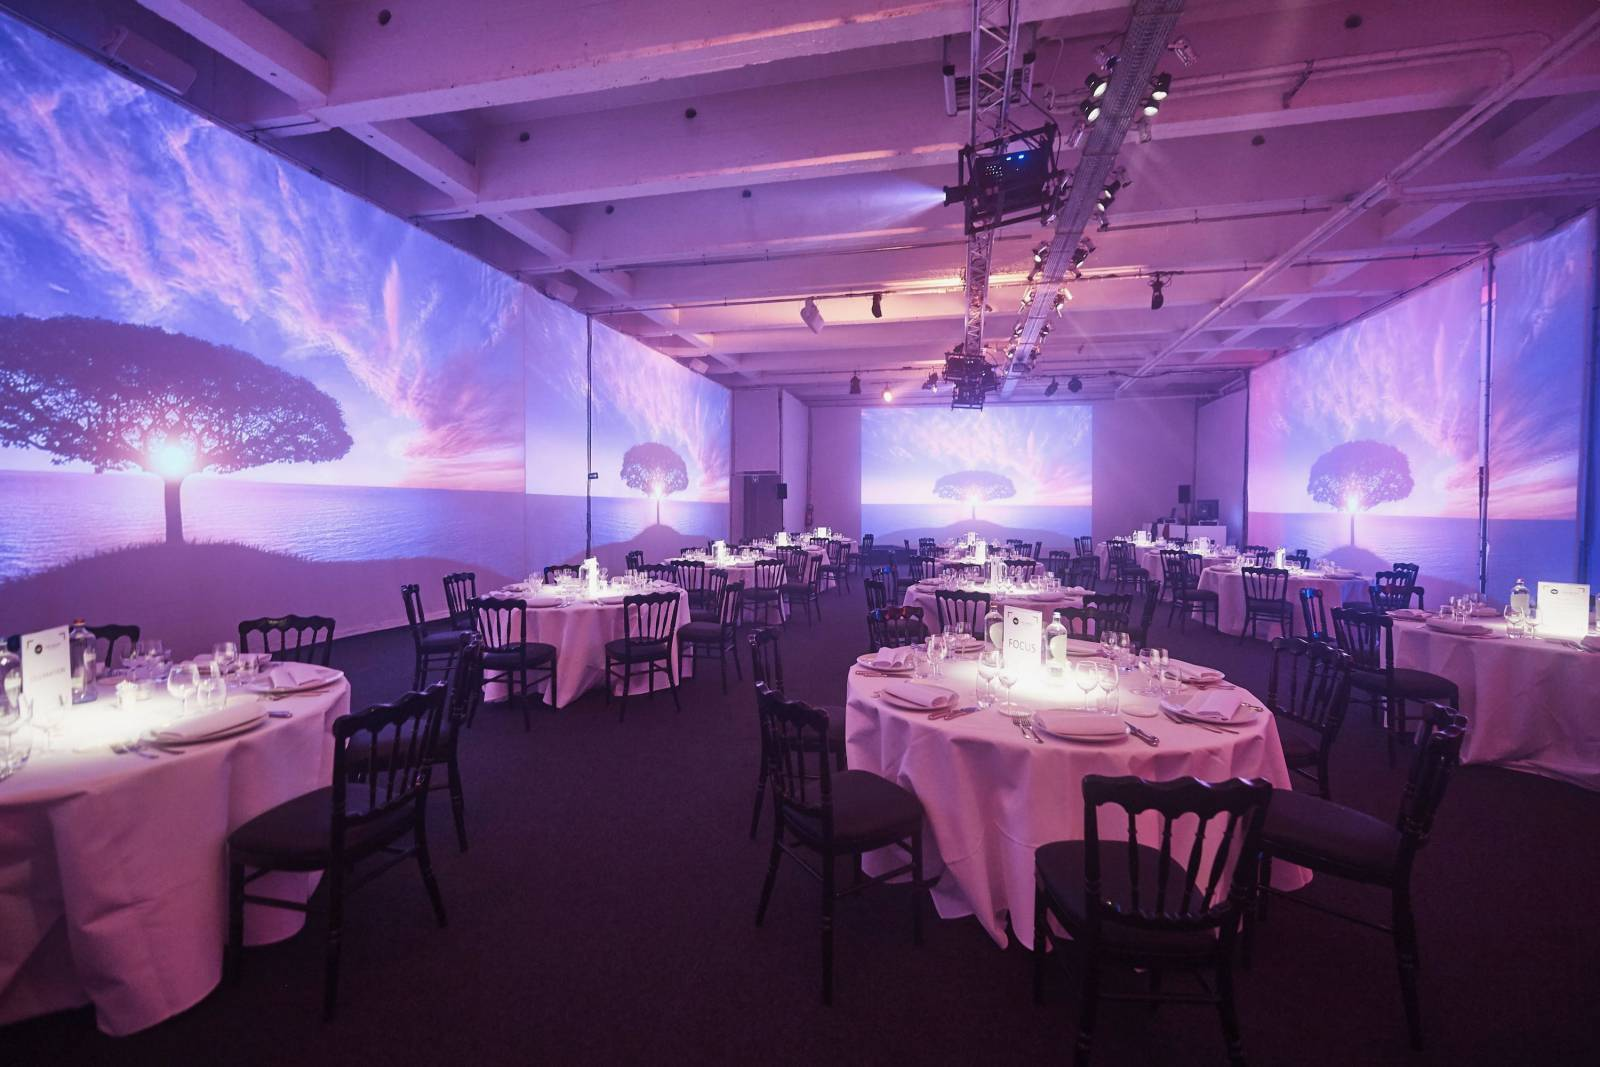 Wild Gallery - Eventlocatie - House of Events - 2